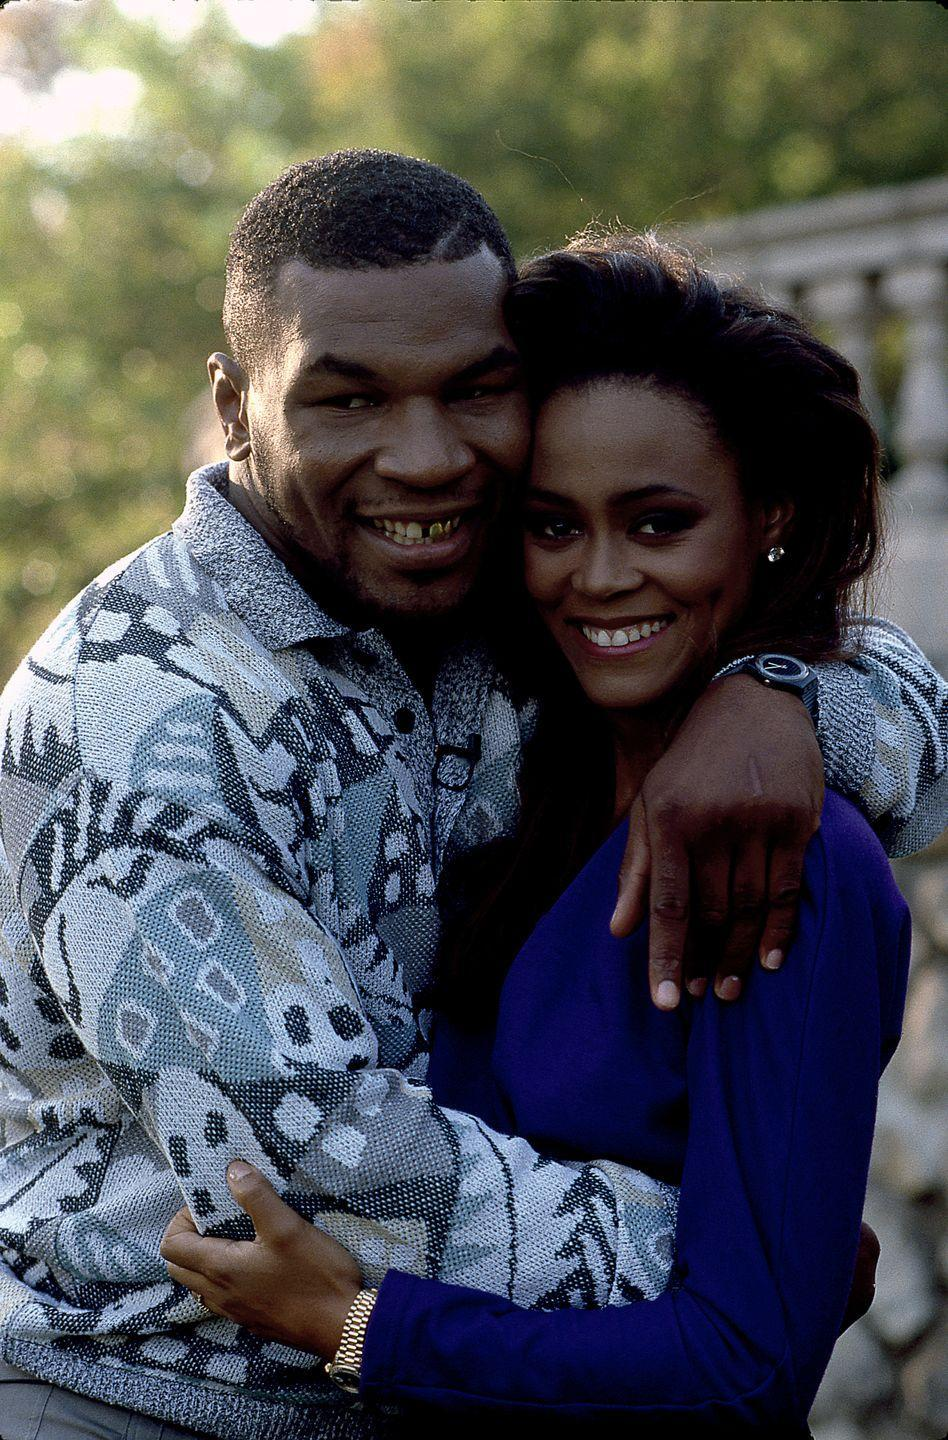 """<p><strong>Settlement: </strong><a href=""""http://www.complex.com/sports/2012/02/the-most-expensive-divorces-in-sports-history/4"""" rel=""""nofollow noopener"""" target=""""_blank"""" data-ylk=""""slk:$10 million"""" class=""""link rapid-noclick-resp"""">$10 million</a></p><p>After a short eight months, Given and Tyson ended their relationship. She reportedly received $10 million from the settlement, but could have gotten more according to this <a href=""""https://www.youtube.com/watch?v=_Gc3rAaw6hs"""" rel=""""nofollow noopener"""" target=""""_blank"""" data-ylk=""""slk:news clip"""" class=""""link rapid-noclick-resp"""">news clip</a>. Givens said she didn't <a href=""""http://www.complex.com/sports/2012/02/the-most-expensive-divorces-in-sports-history/4"""" rel=""""nofollow noopener"""" target=""""_blank"""" data-ylk=""""slk:marry Tyson for the money"""" class=""""link rapid-noclick-resp"""">marry Tyson for the money</a>.</p>"""